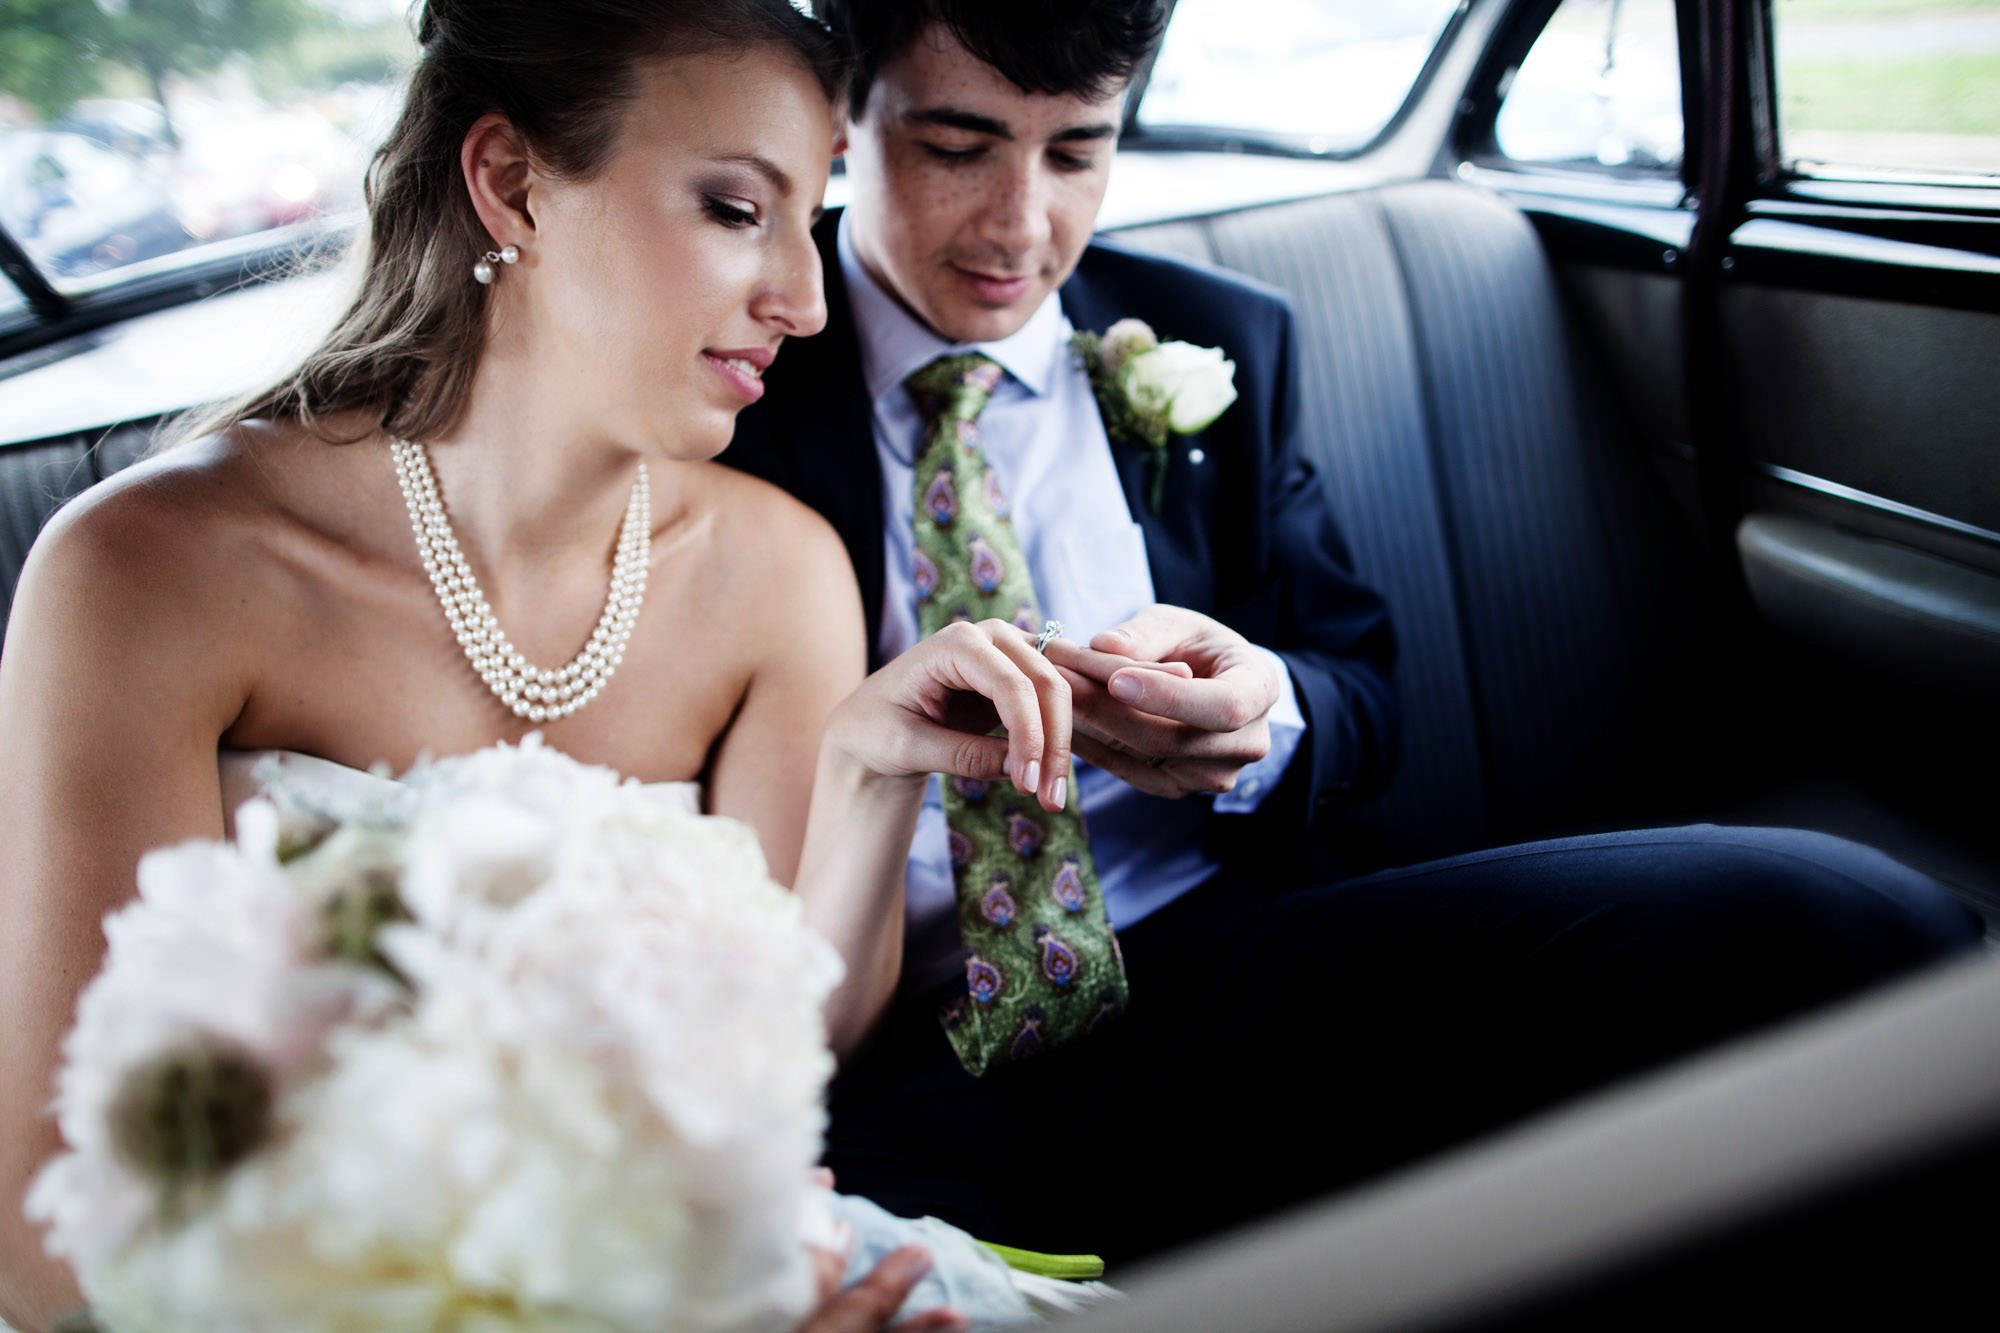 The bride and groom drive to their wedding reception at Woodend Sanctuary & Mansion.